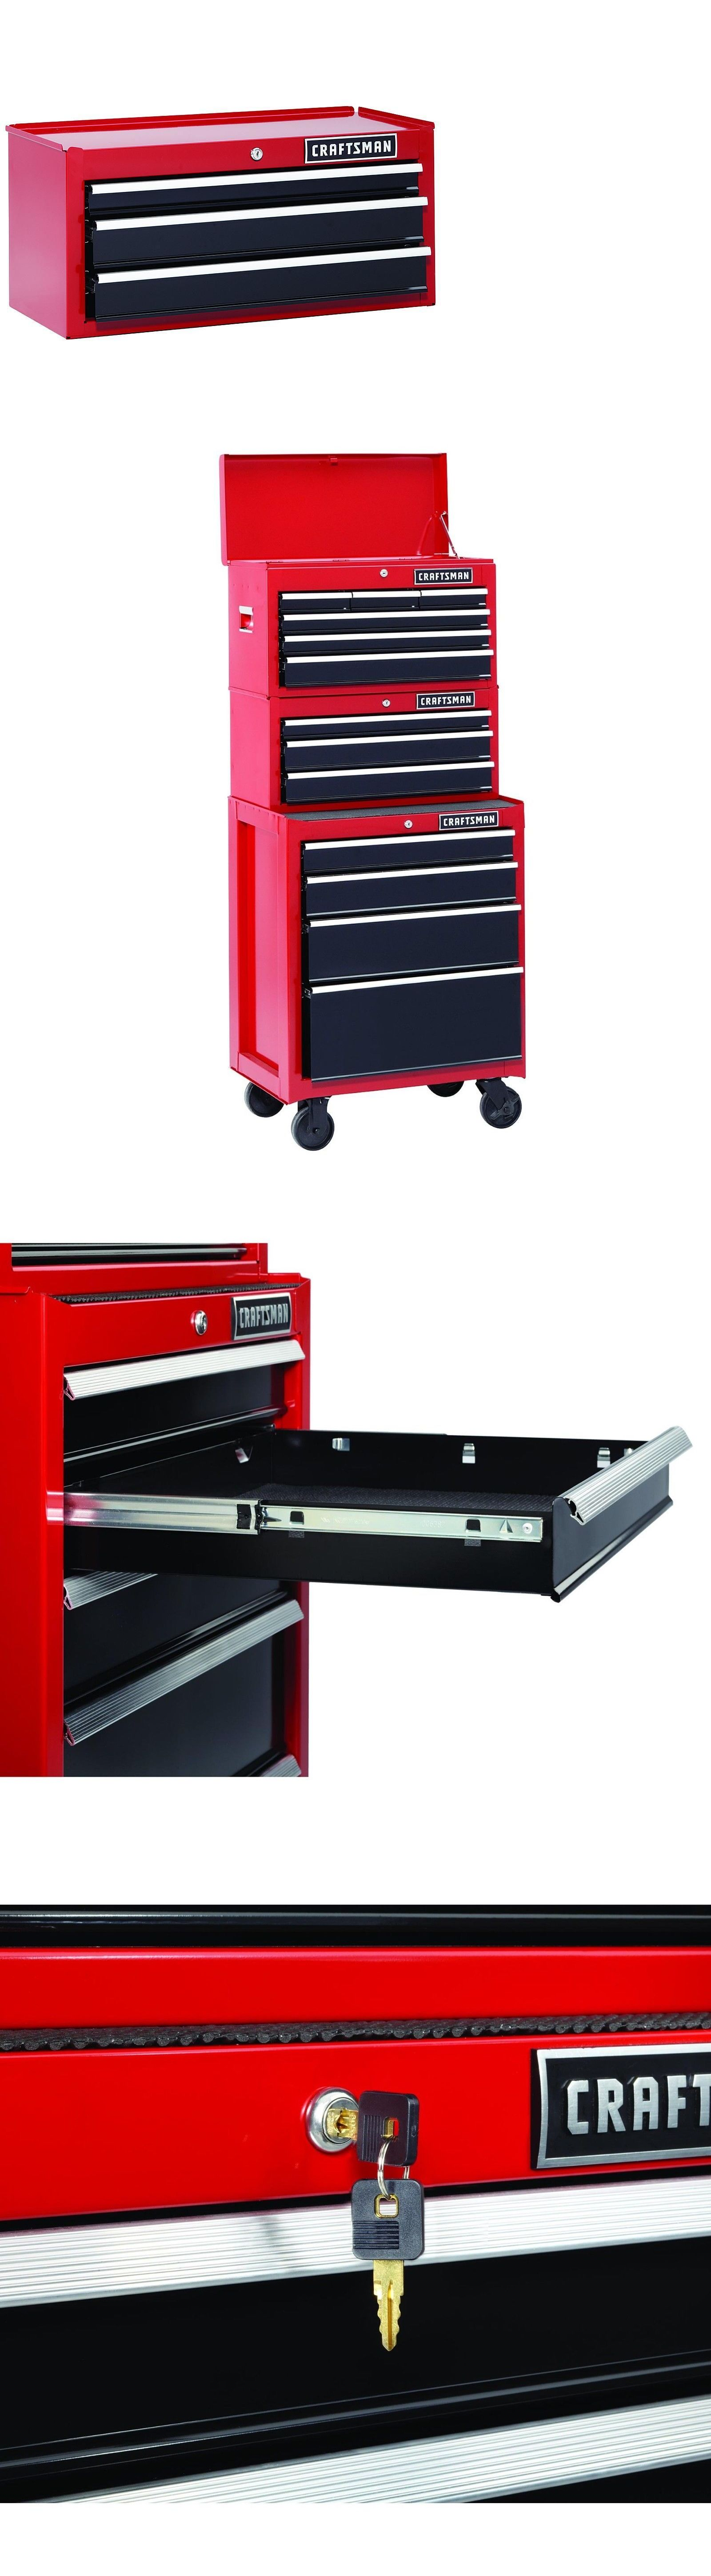 Tool Boxes 33089: Craftsman 26 In  3-Drawer Heavy-Duty Ball Bearing